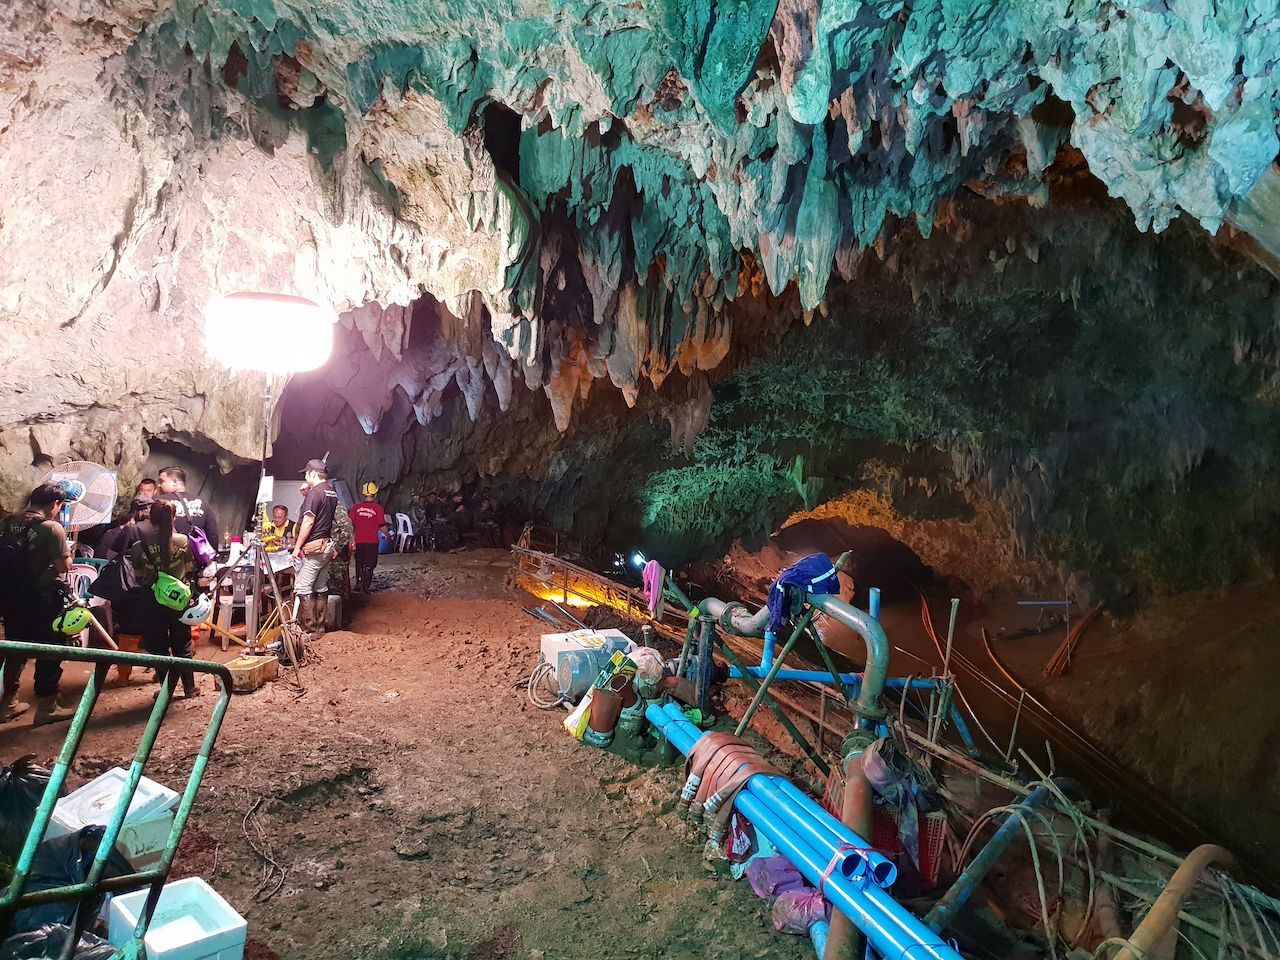 Tham Luang Nang Non cave network in Thailand during the rescue event of 12 members of a junior football team